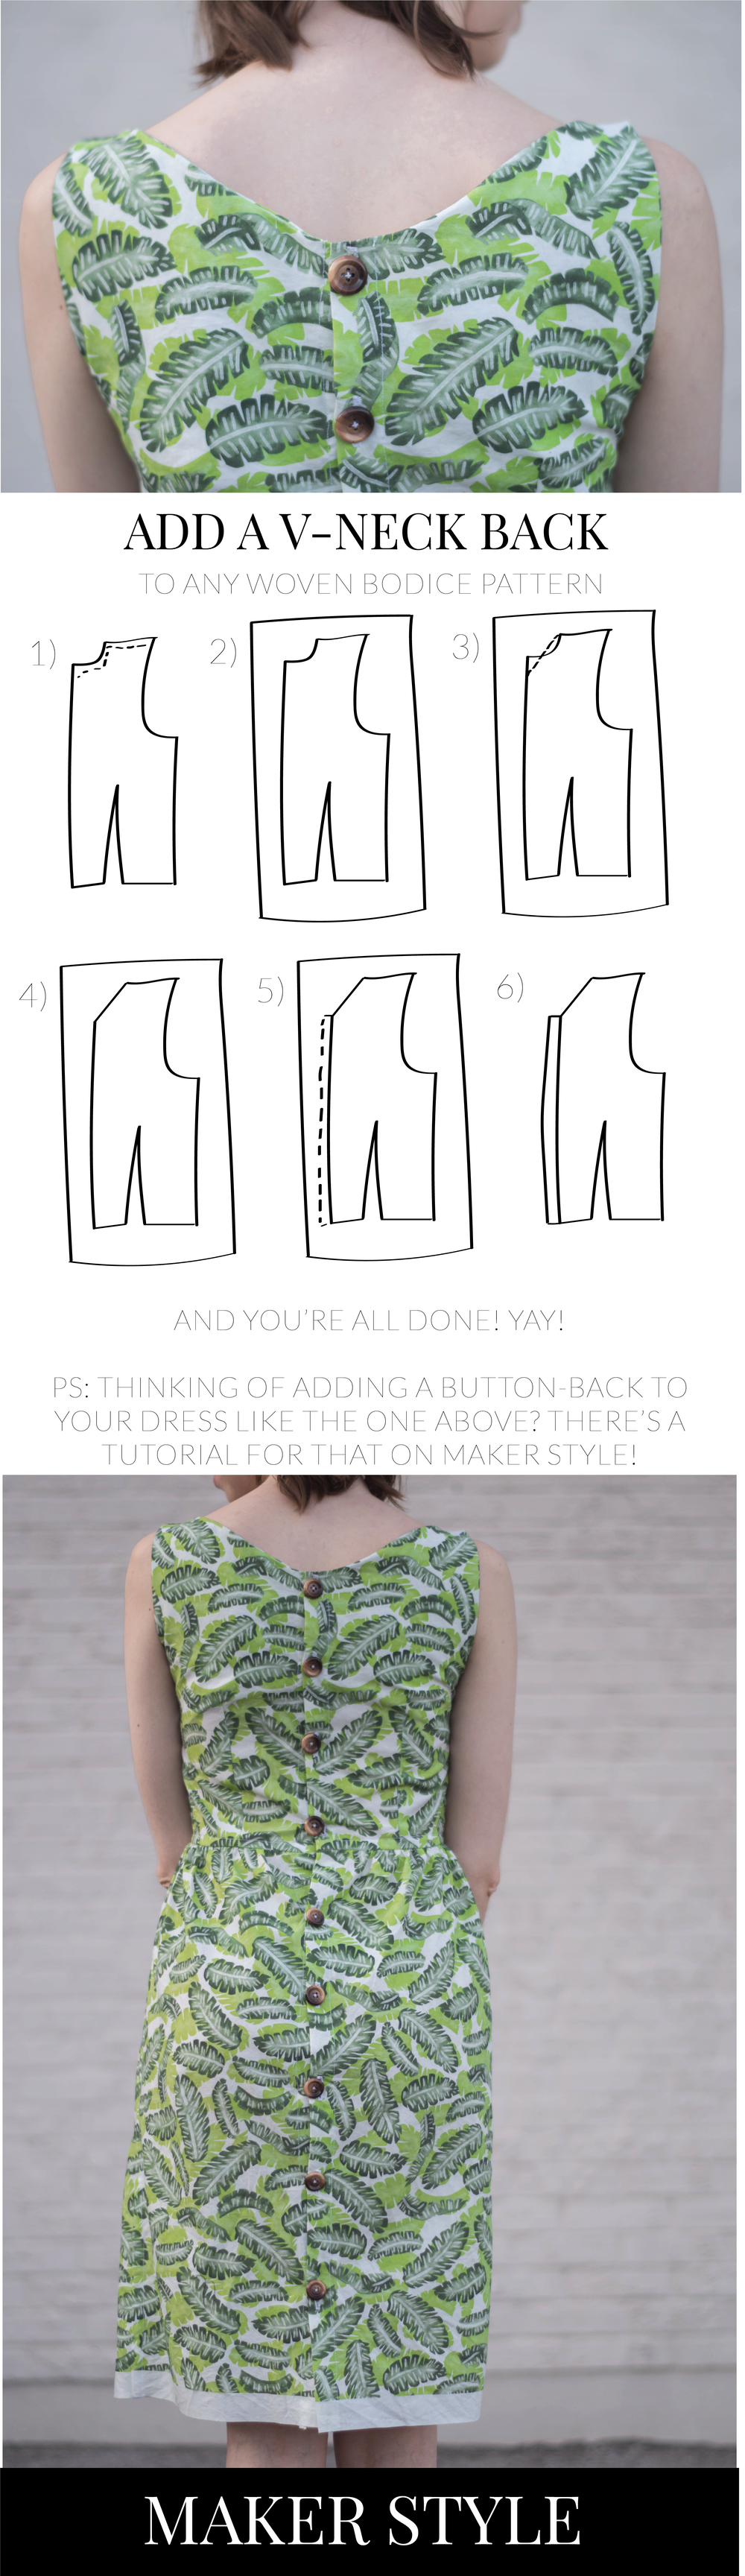 Looking to add an eye-catching v-neck to the back of your next dress? This tutorial will walk you through how to modify a pattern to help you achieve this look. PLUS I'll make a great recommendation for a free dress pattern to try this out with.